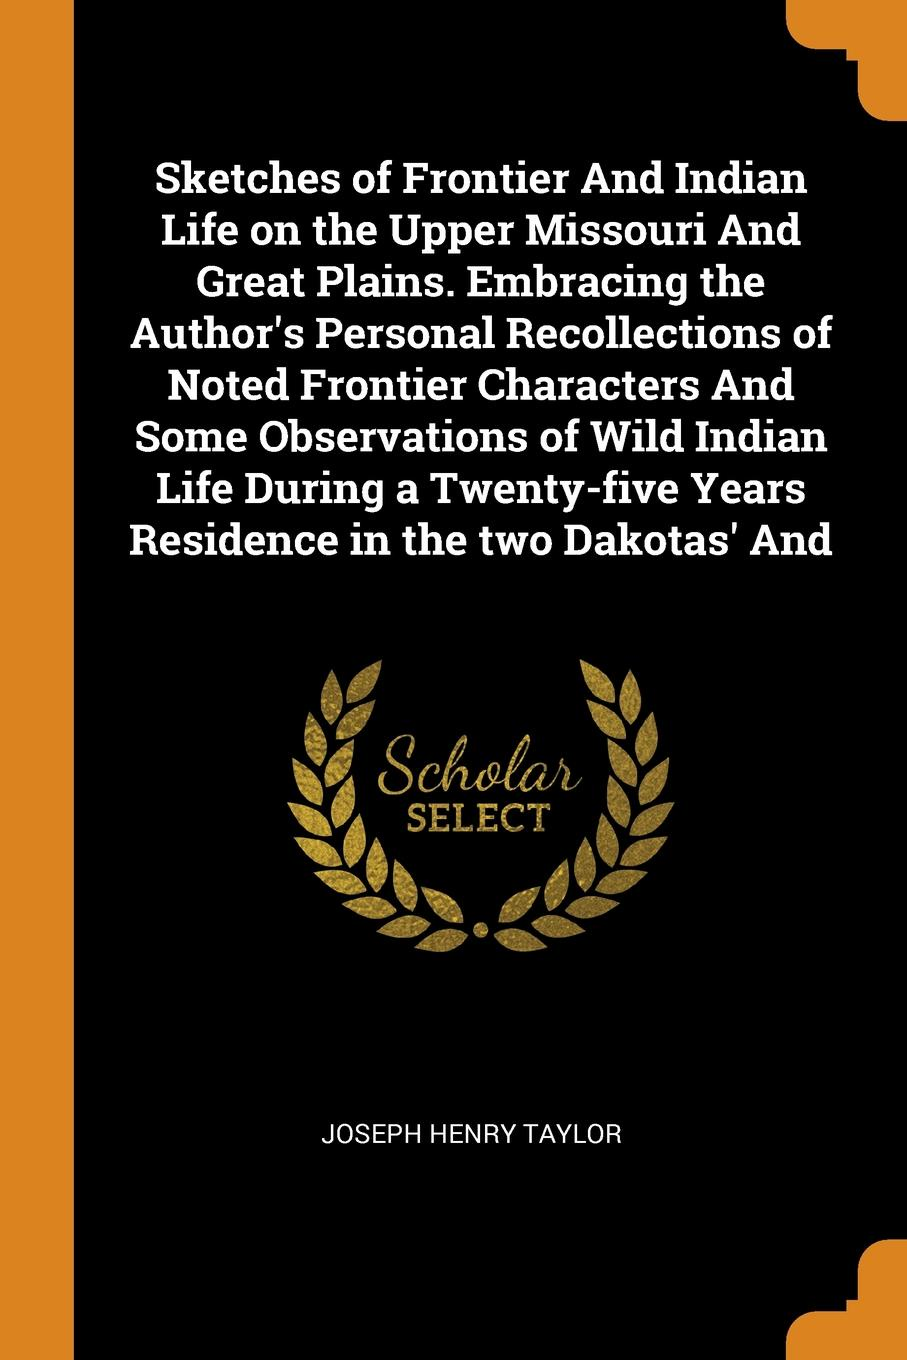 Joseph Henry Taylor Sketches of Frontier And Indian Life on the Upper Missouri Great Plains. Embracing Authors Personal Recollections Noted Characters Some Observations Wild During a Twenty-five Years Residence in two Dakot...